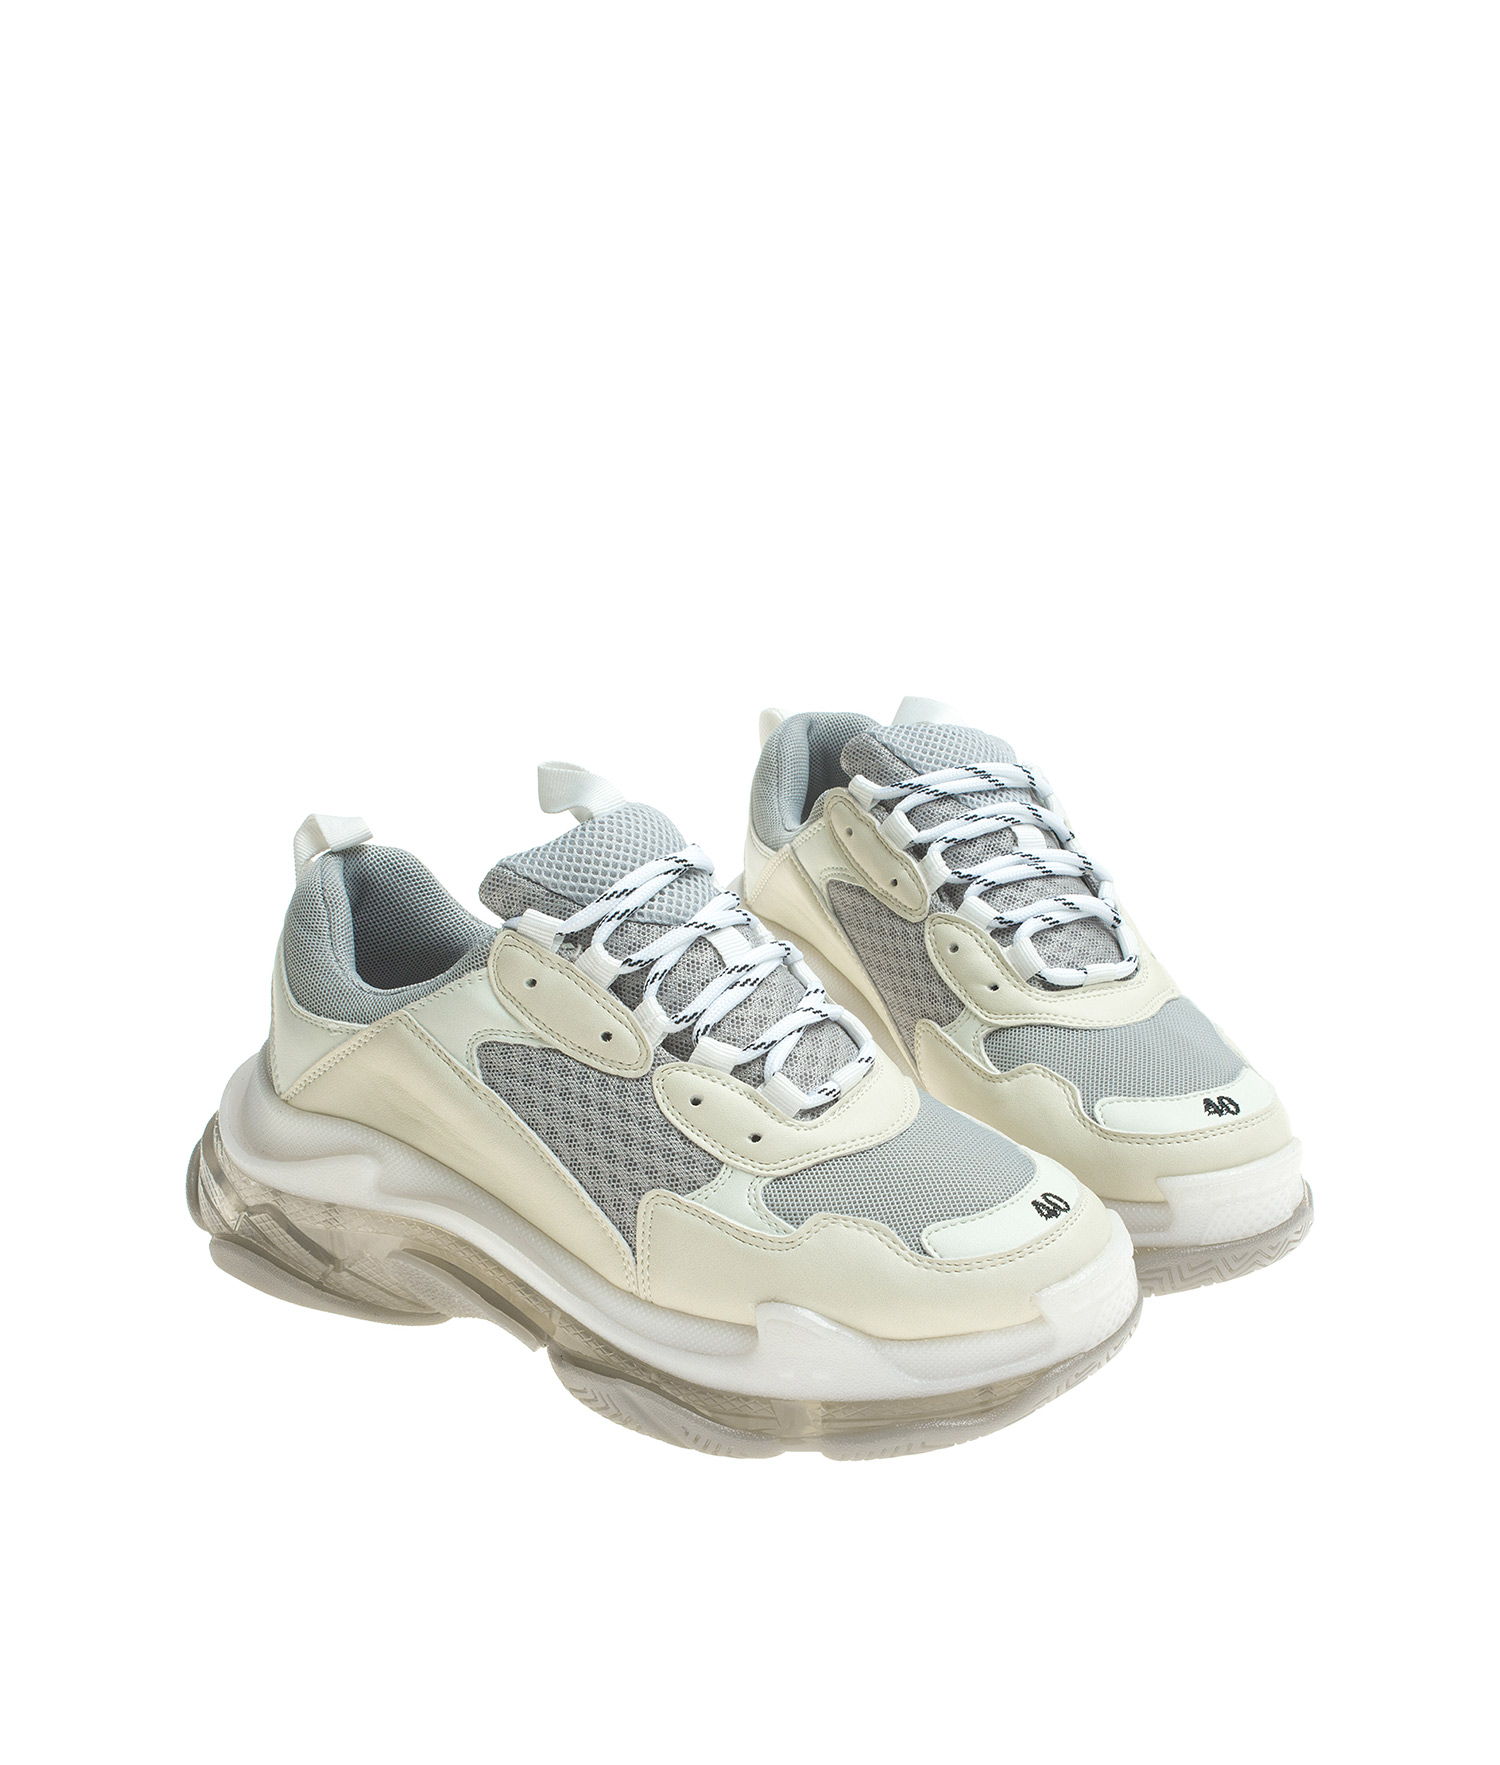 Low Top Chunky Clear Sole Trainers Annakastleshoes Com